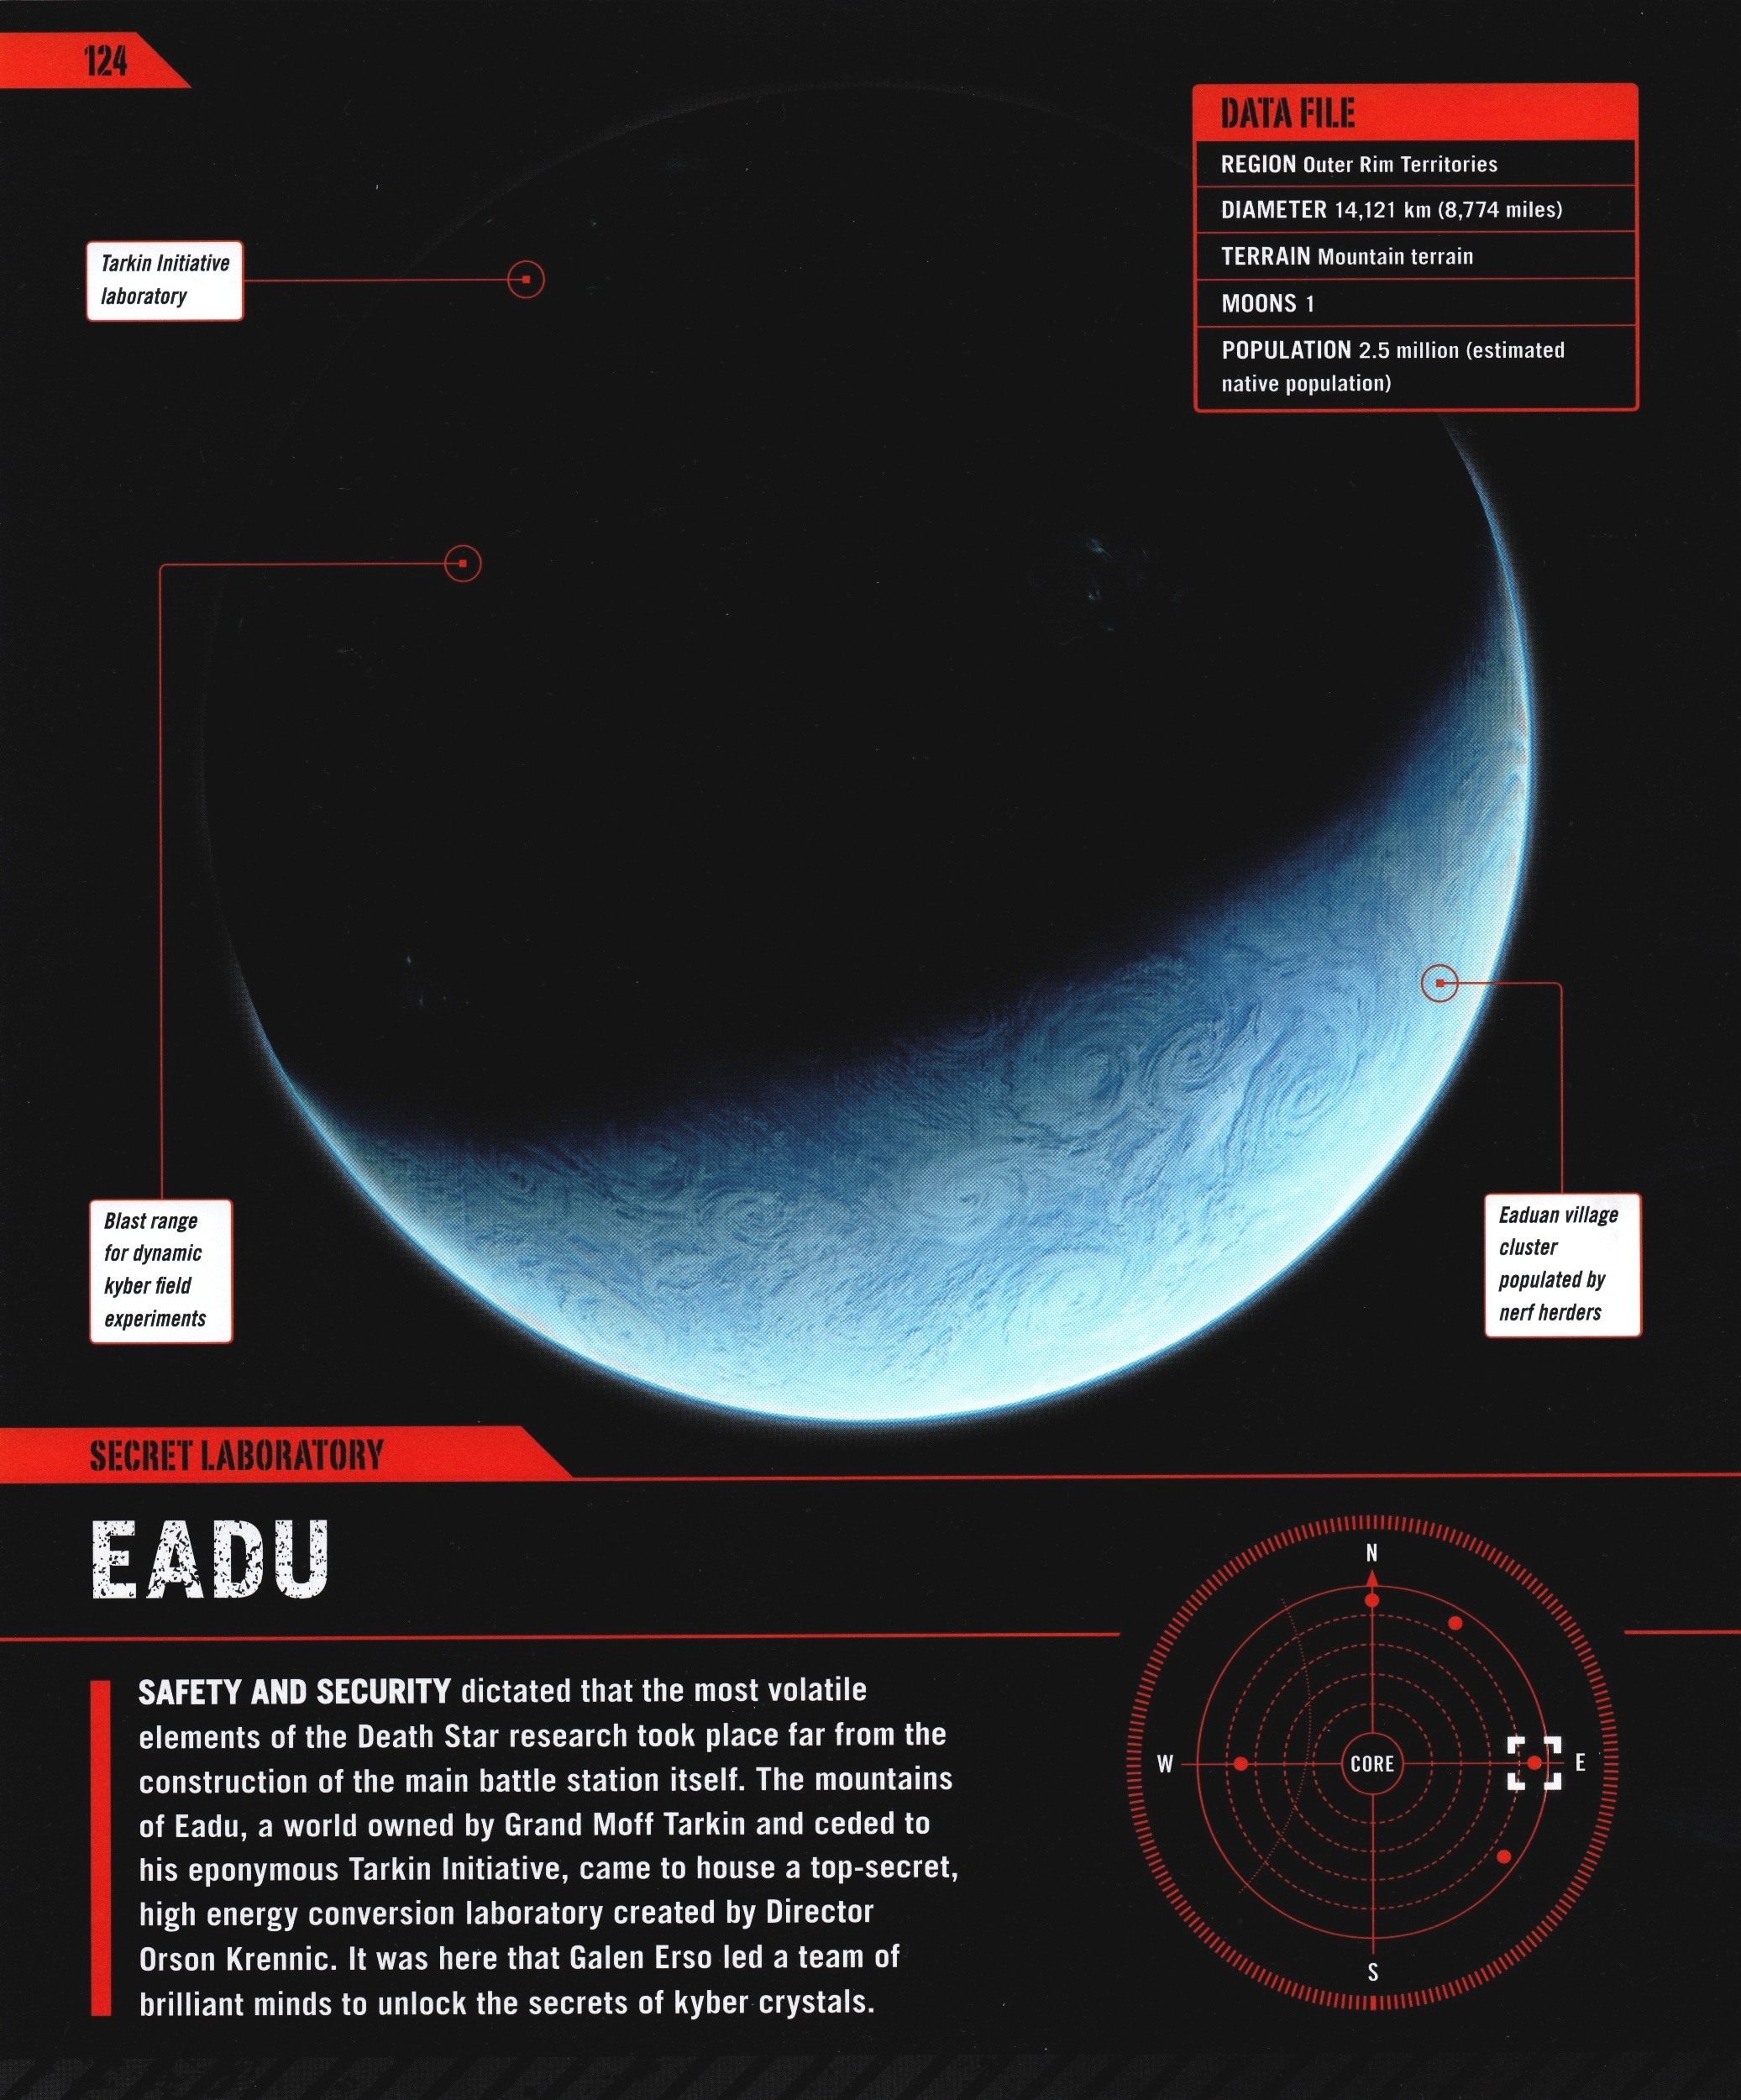 Rogue One Ultimate Visual Guide (b0bafett_Empire) p124